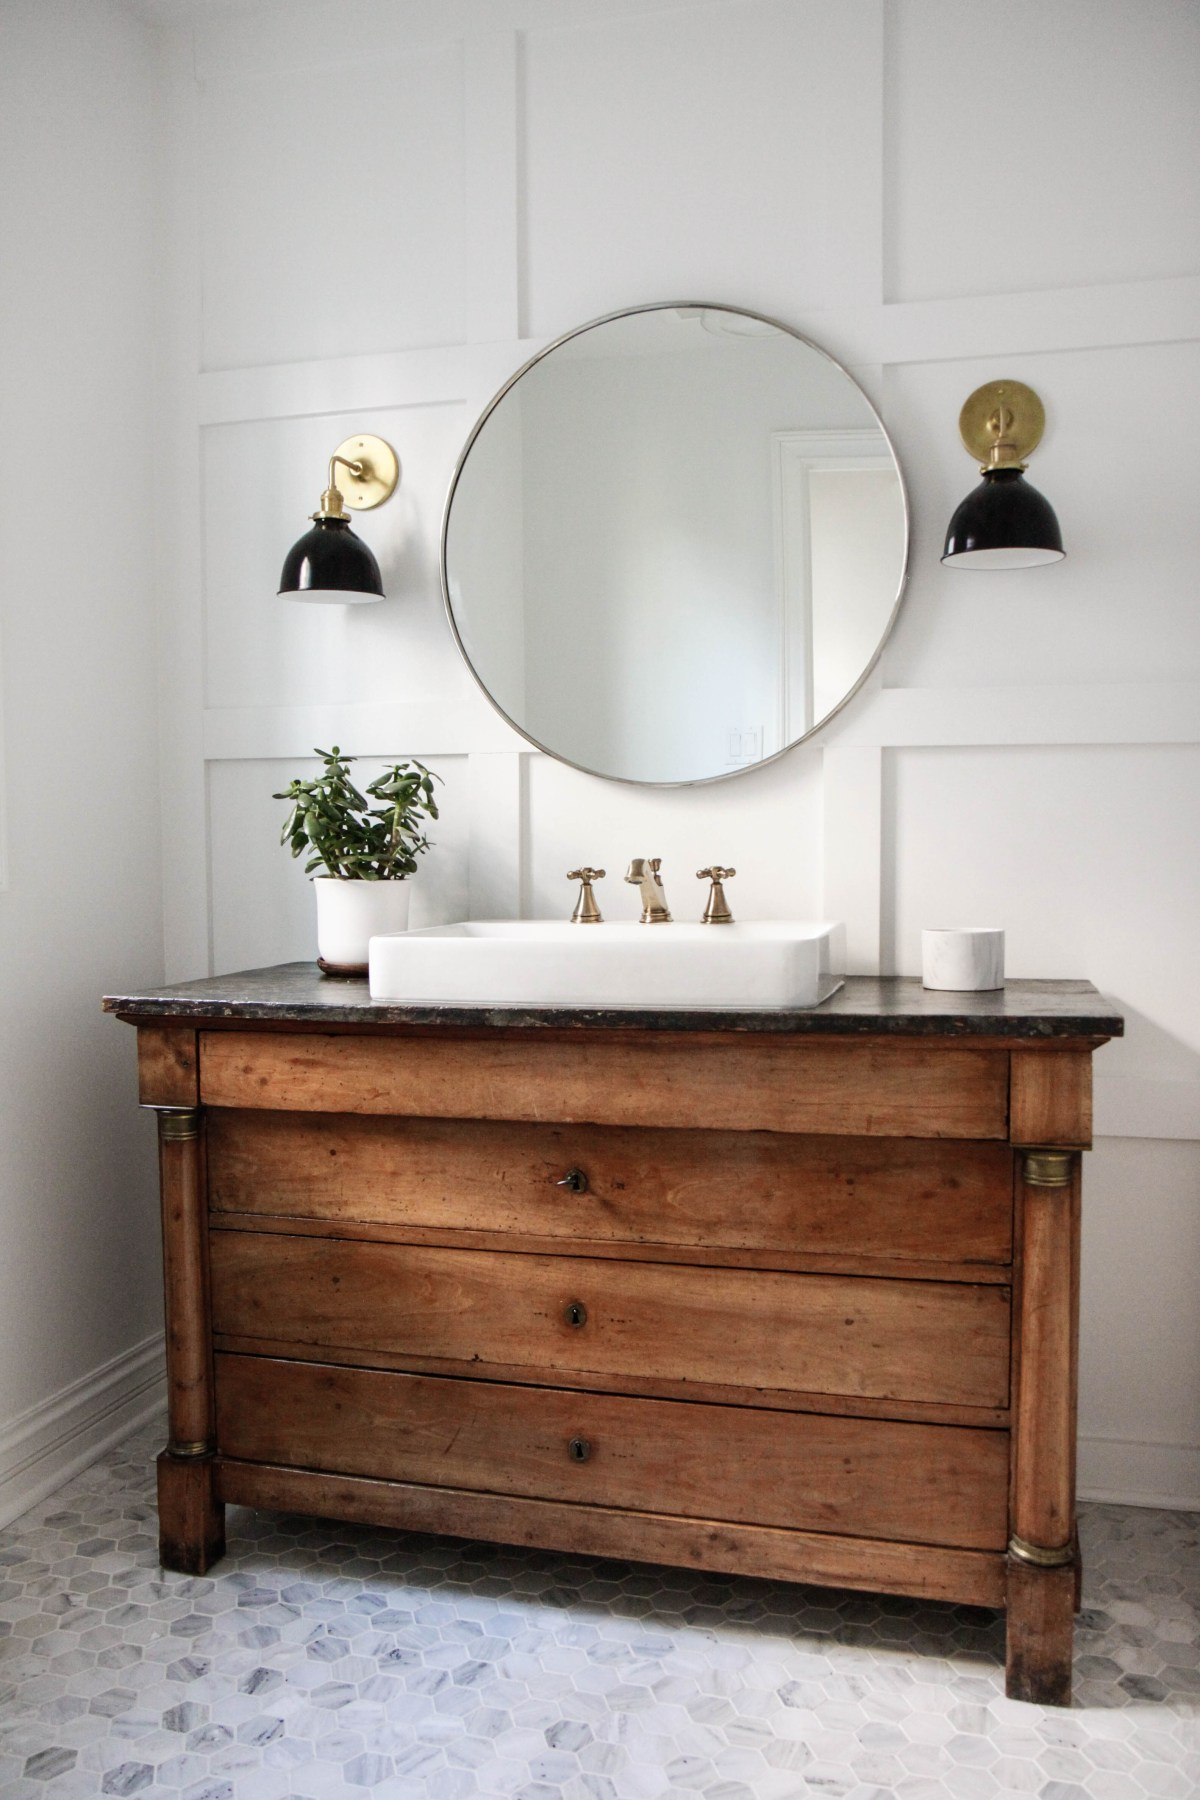 Powder Room Vanity a vintage powder room - park and oak interior design